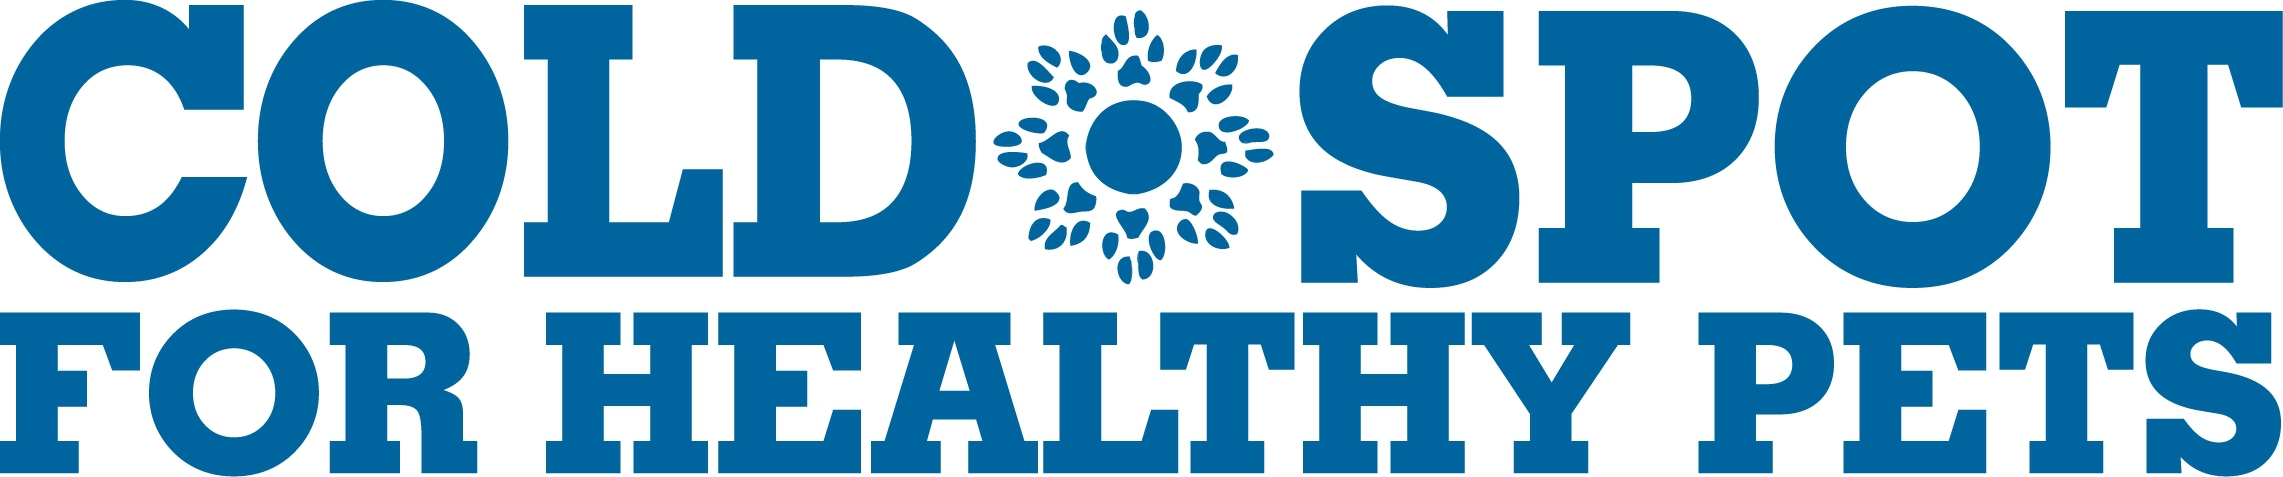 Cold Spot for Healthy Pets